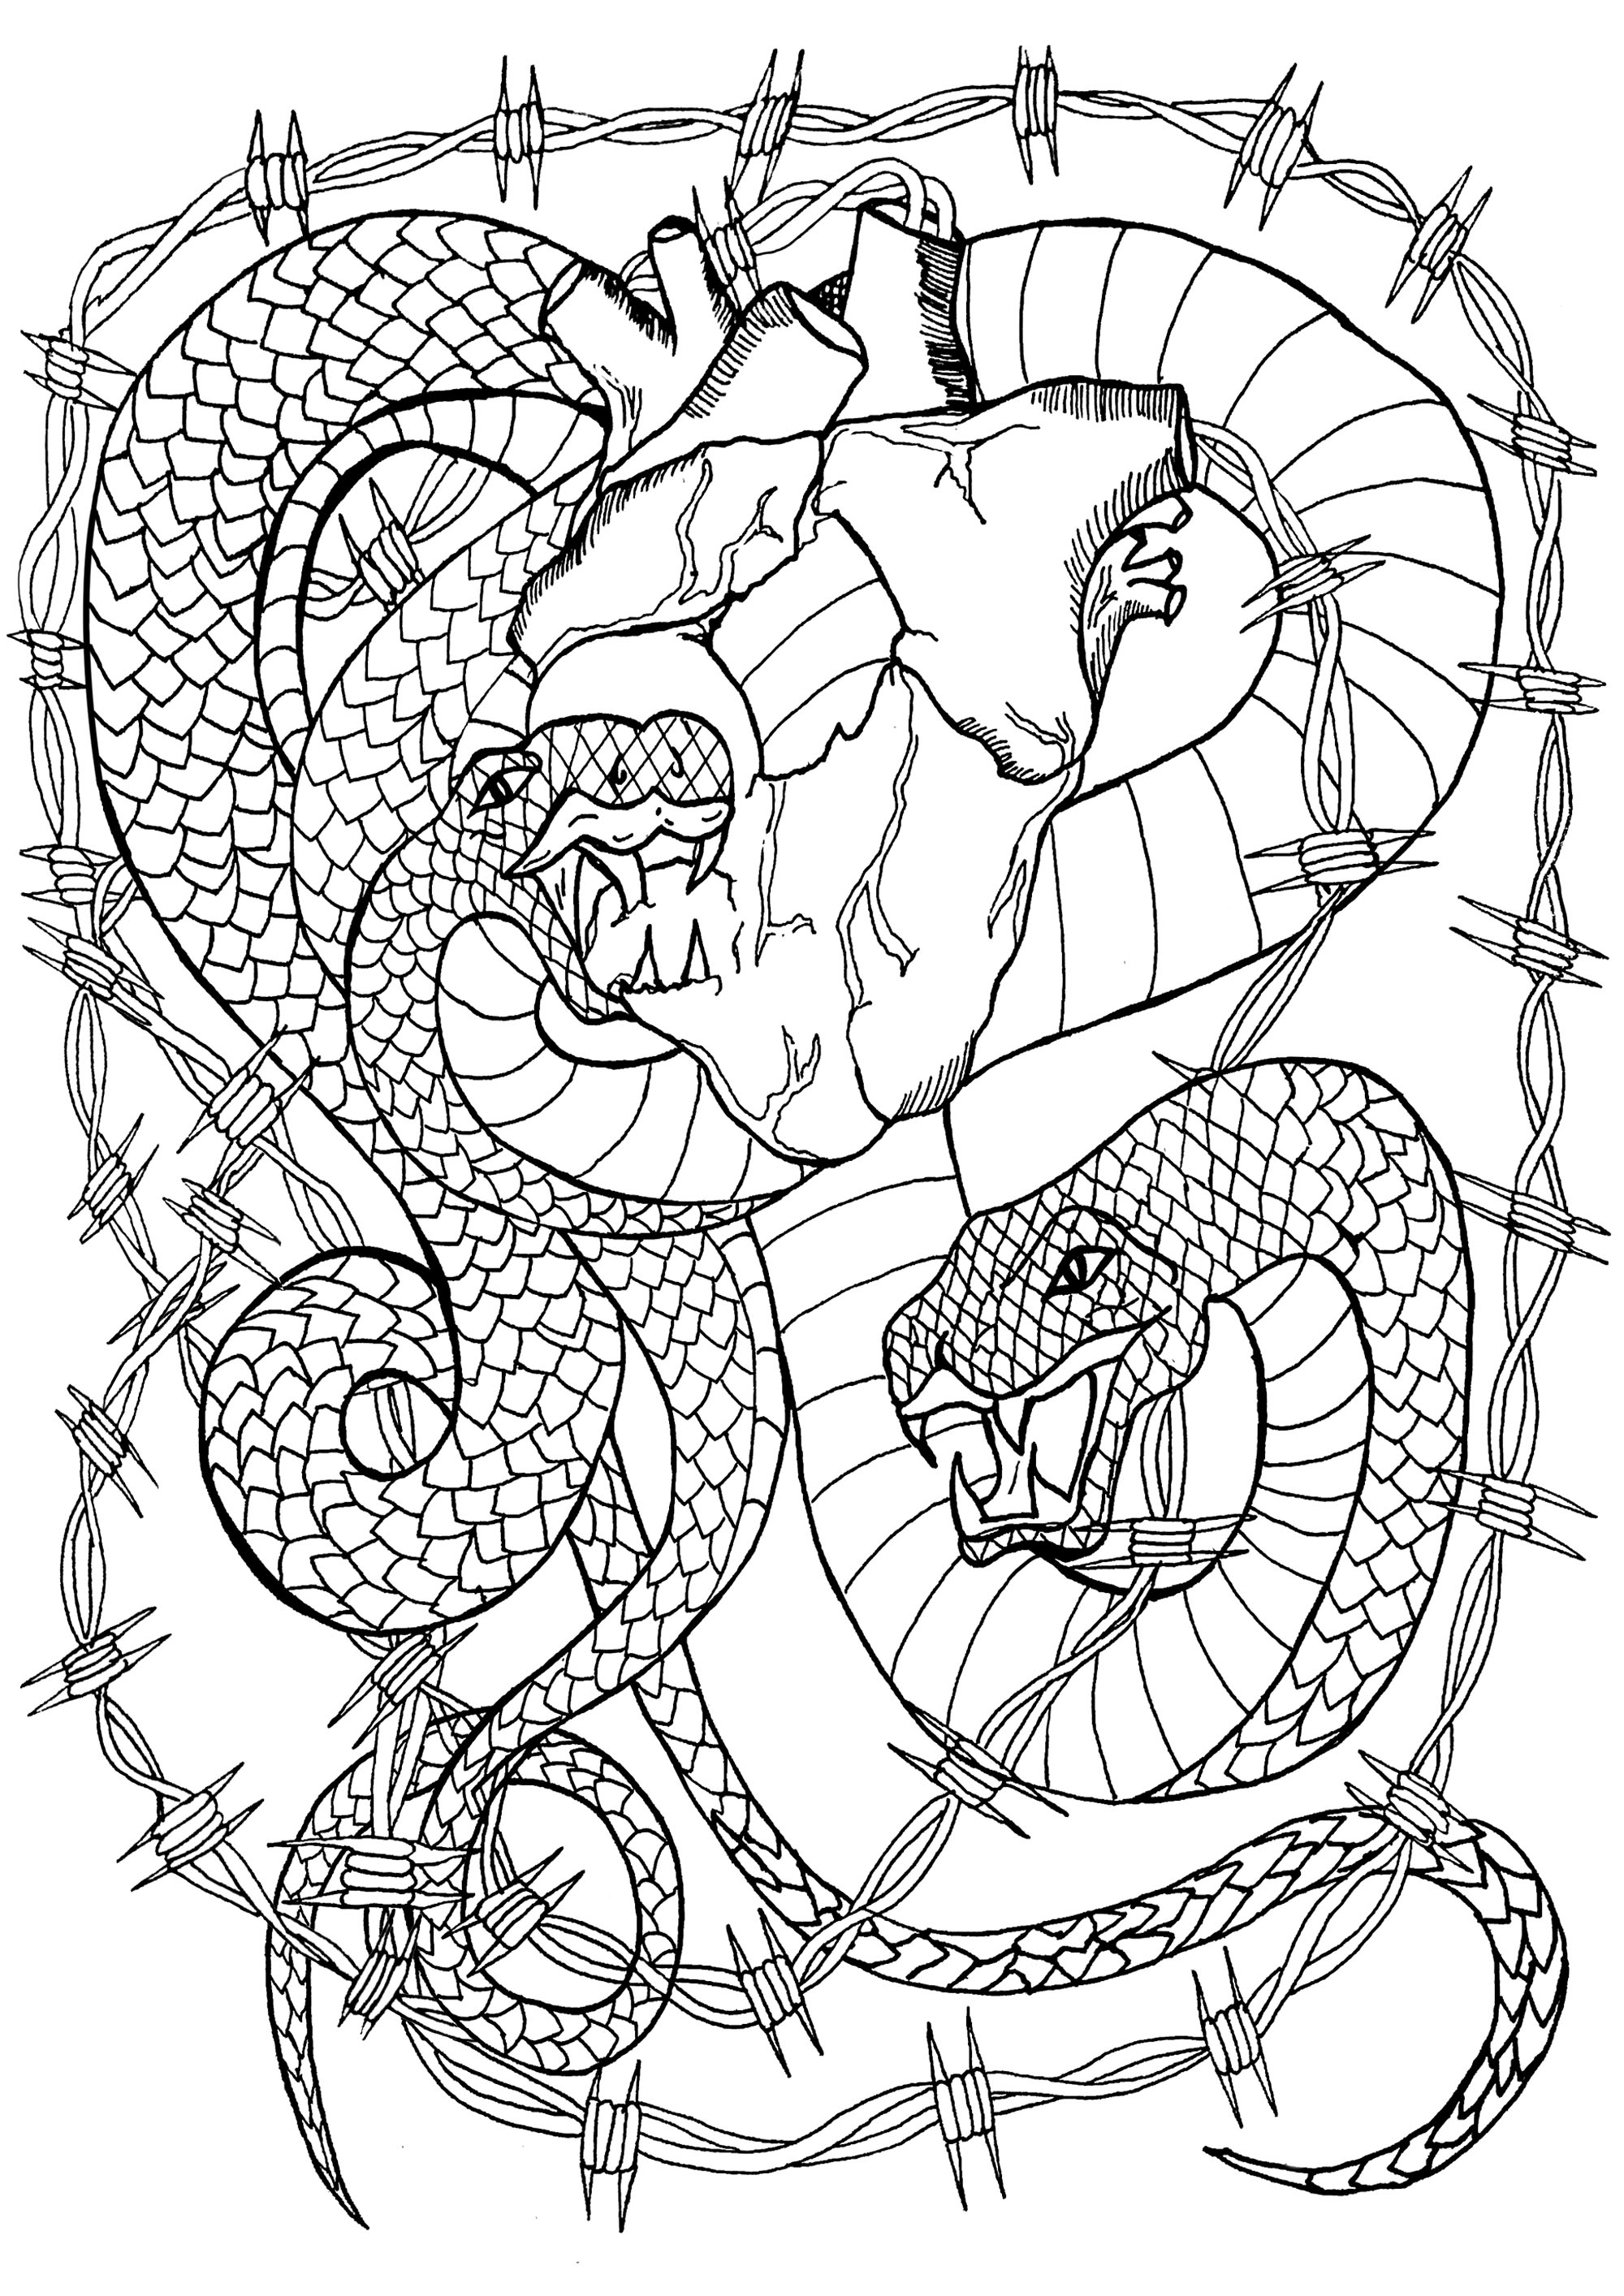 It is a graphic of Légend Tattoo Coloring Page